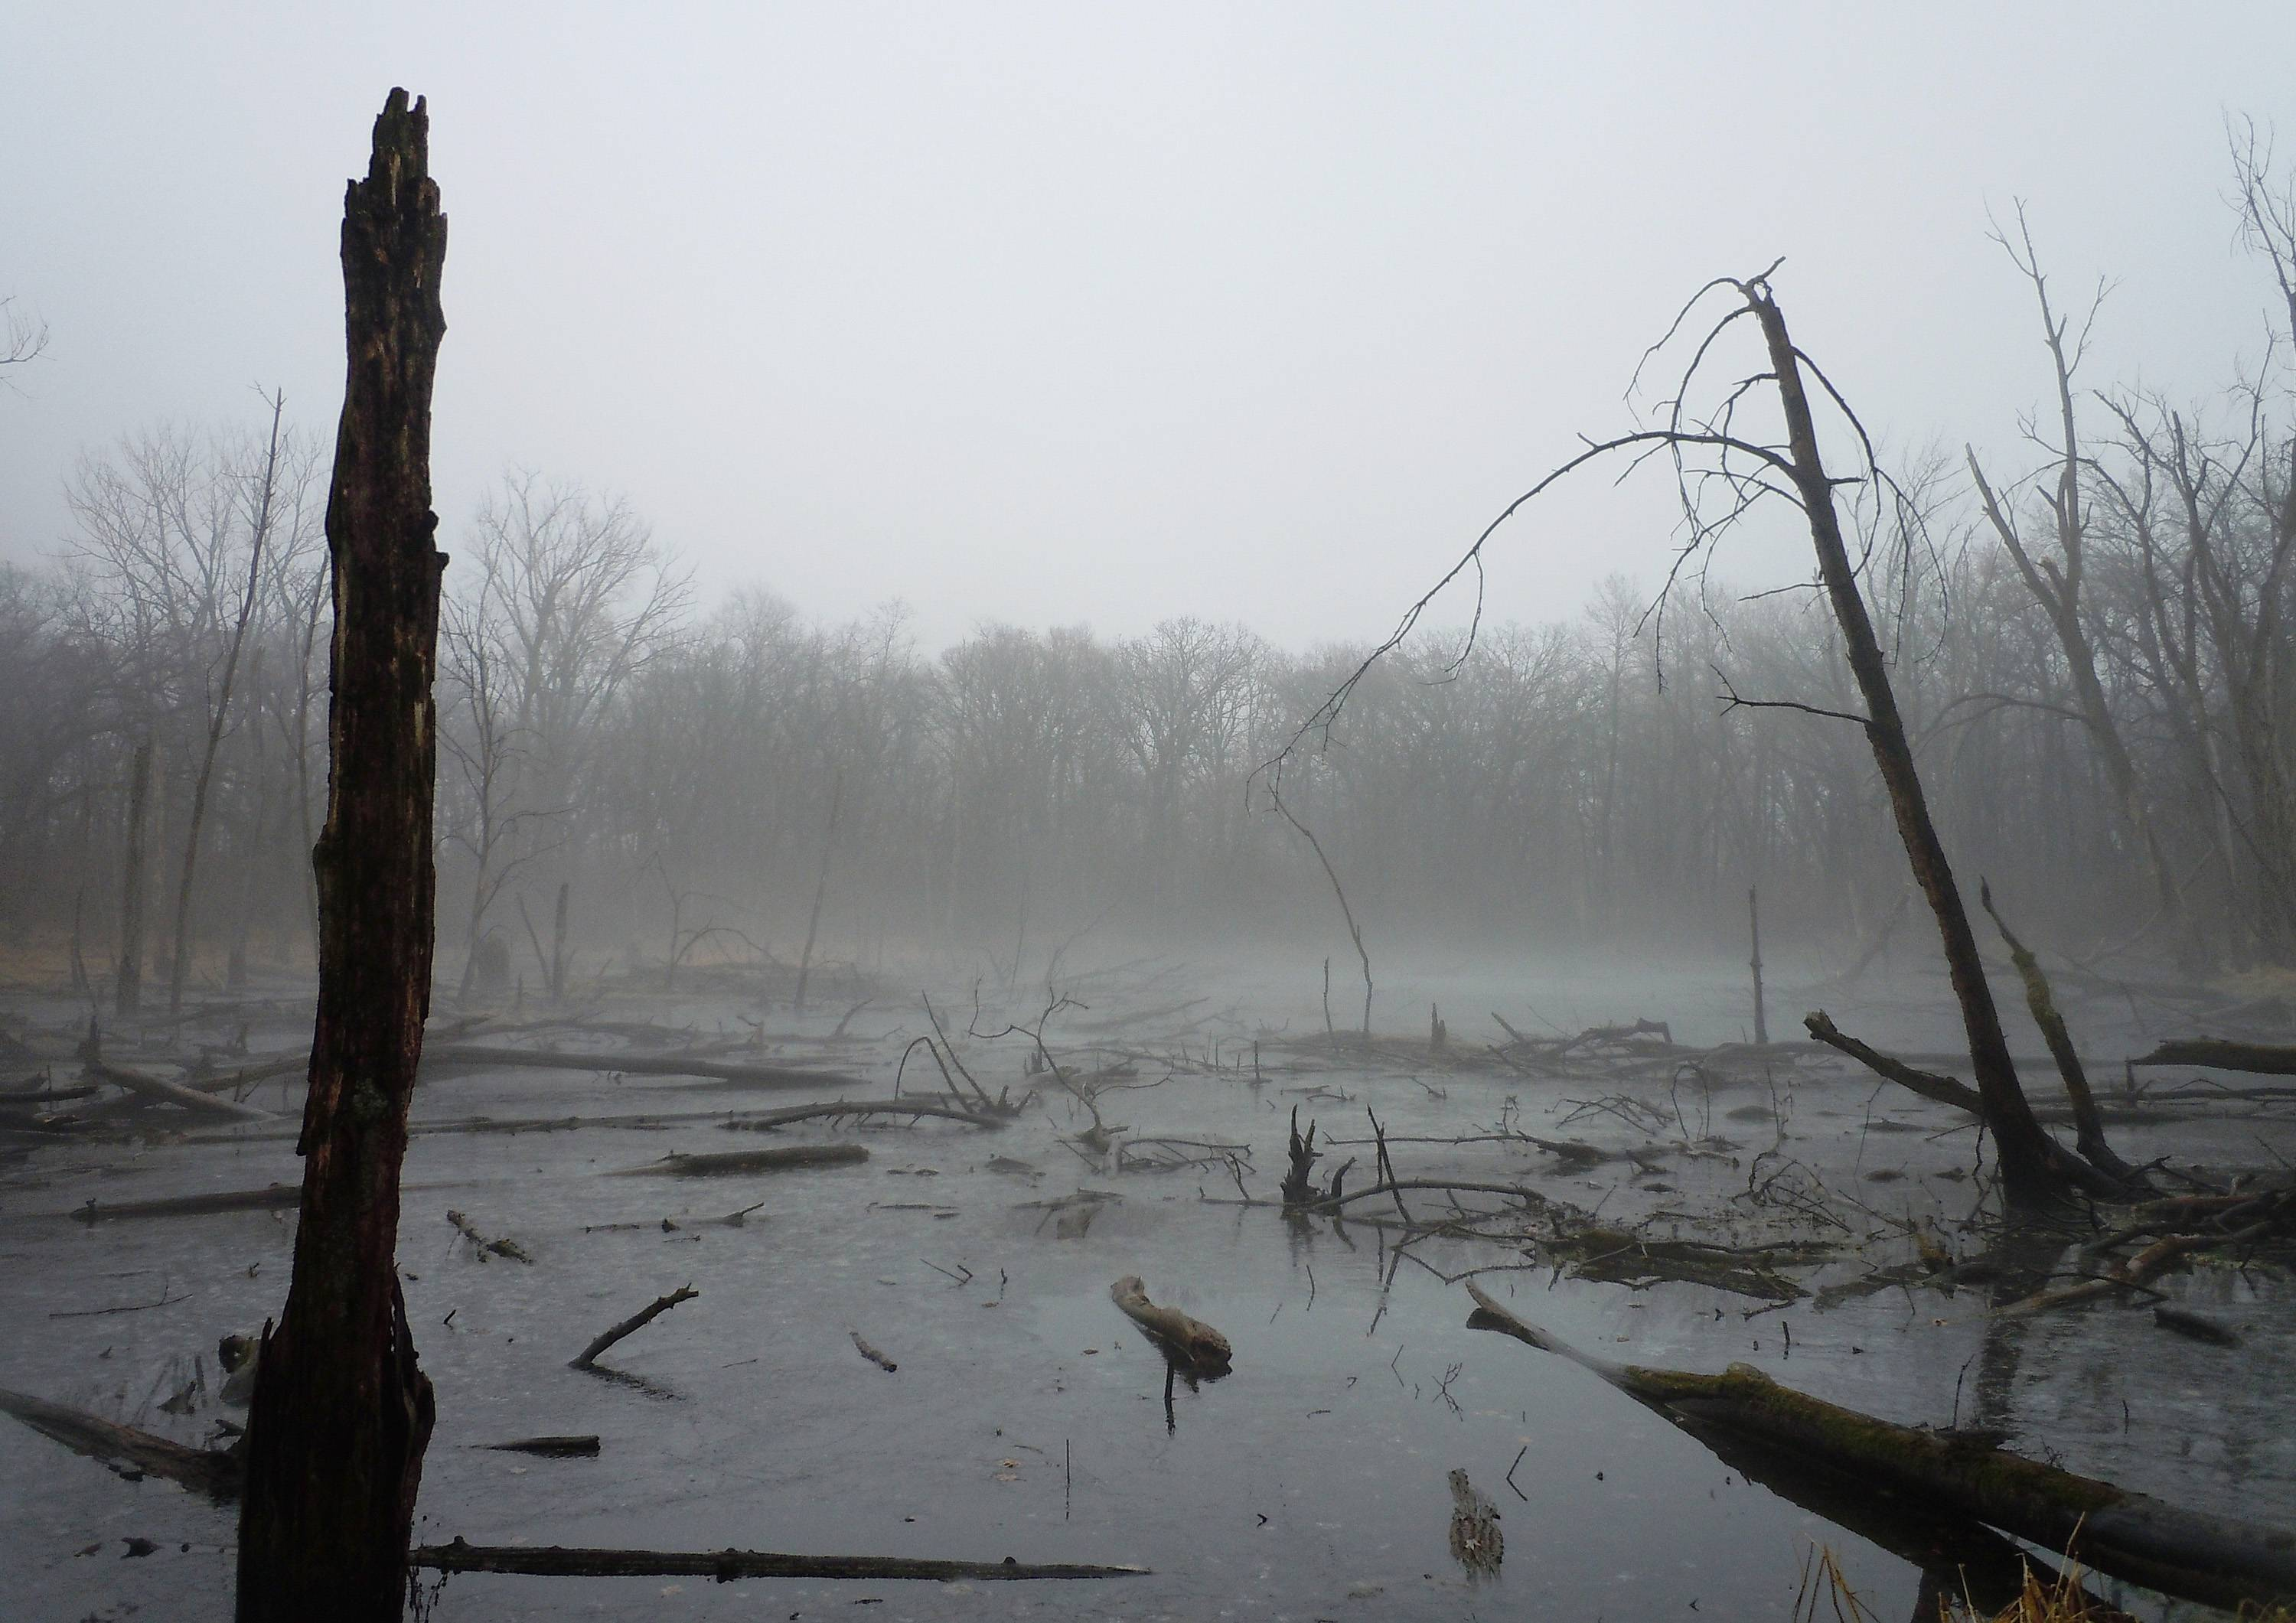 This photo was taken of a wetland at Rutland Forest Preserve in early December 2013. The weather conditions created an eerie glow, making it a perfect photo opportunity.